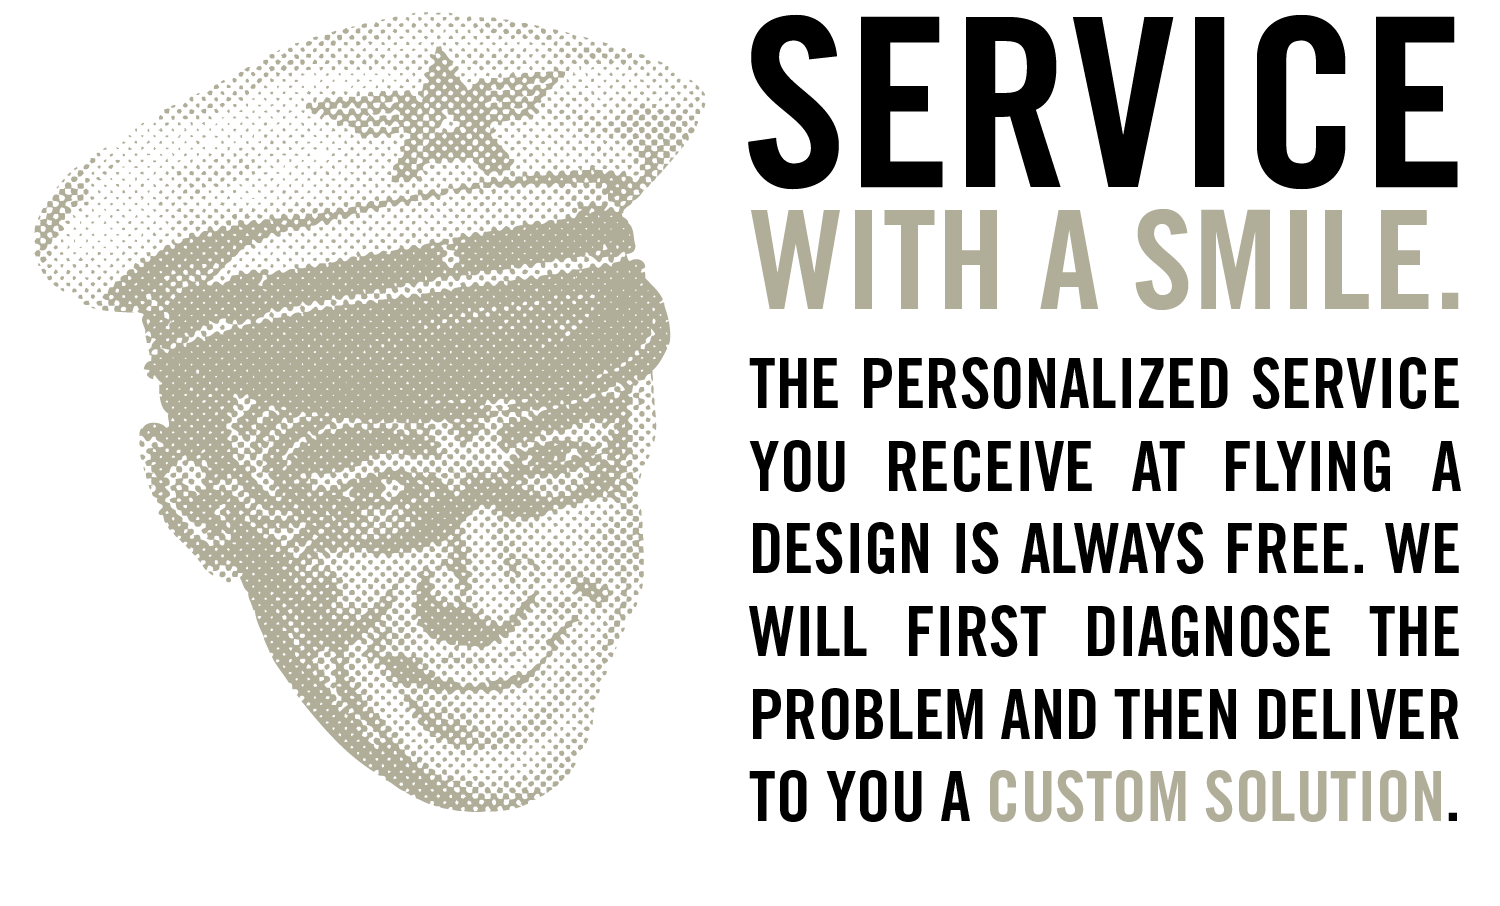 service_1.png